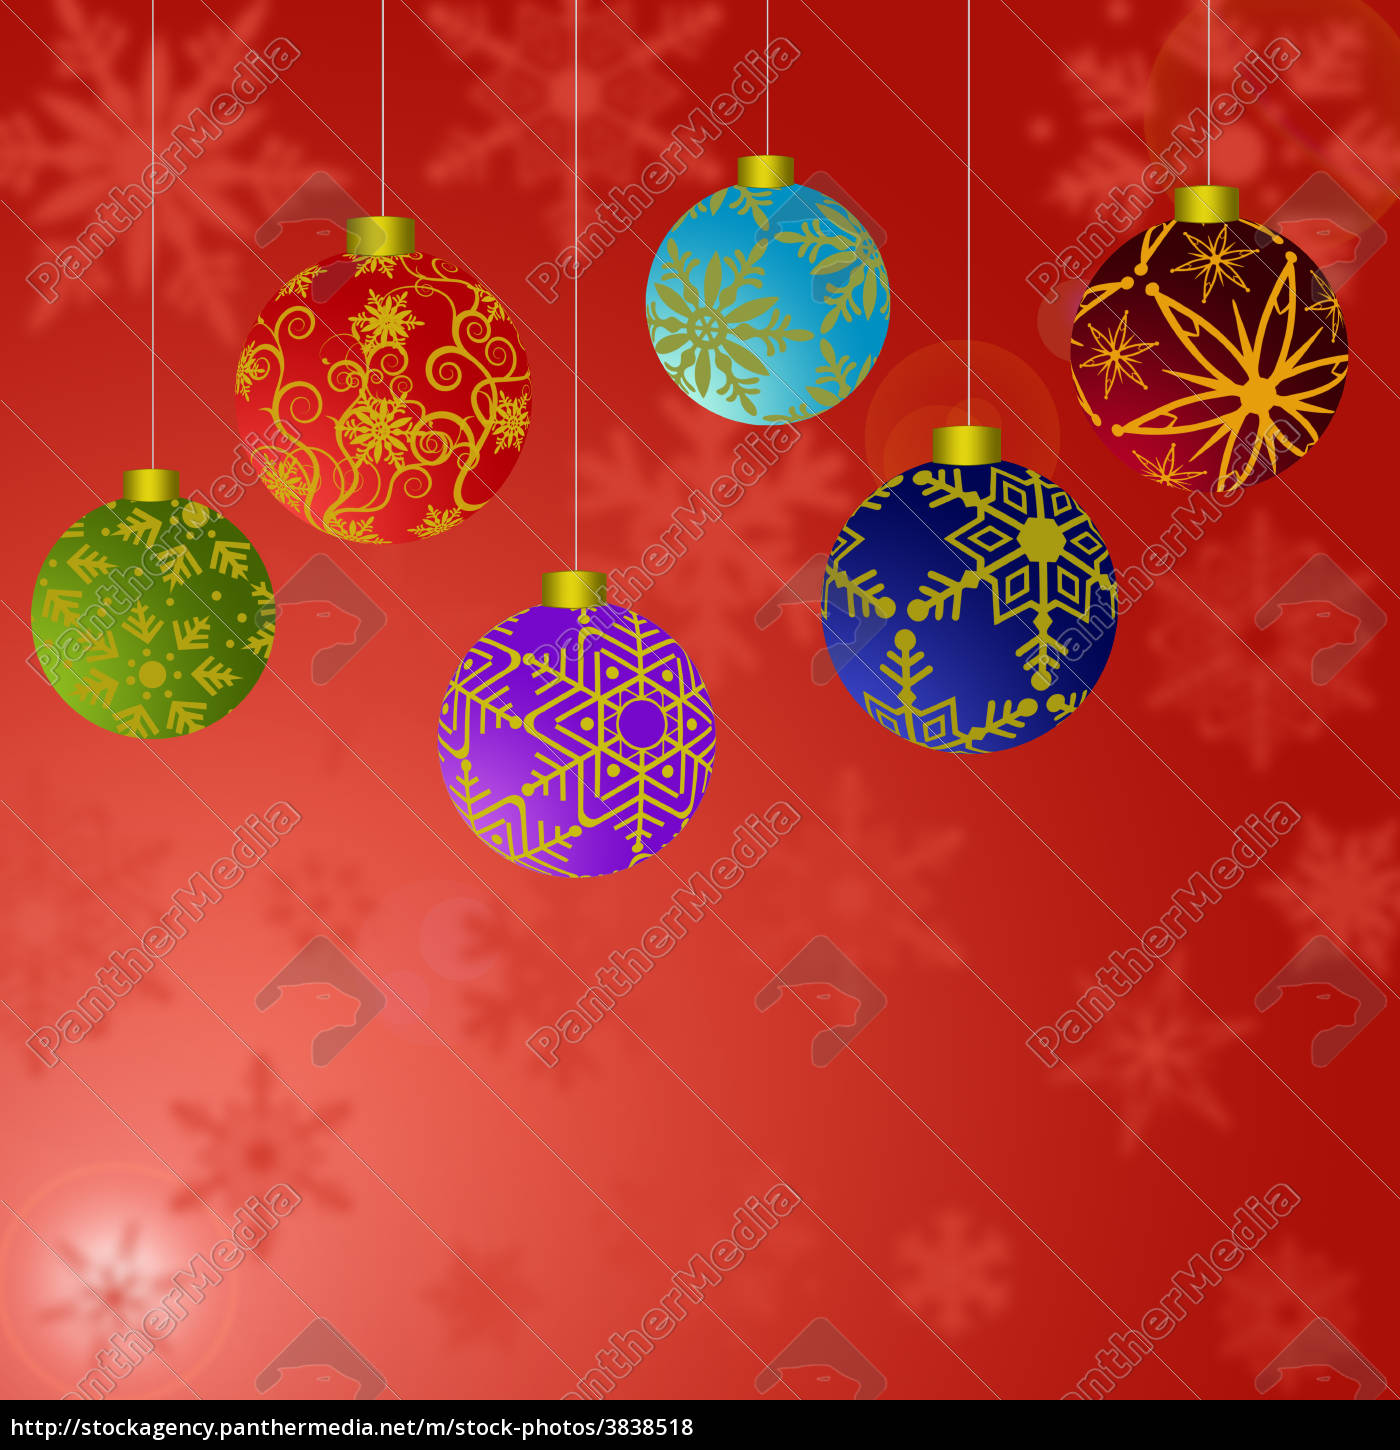 Christmas Ornaments Background.Royalty Free Image 3838518 Hanging Christmas Ornaments With Snowflakes Background